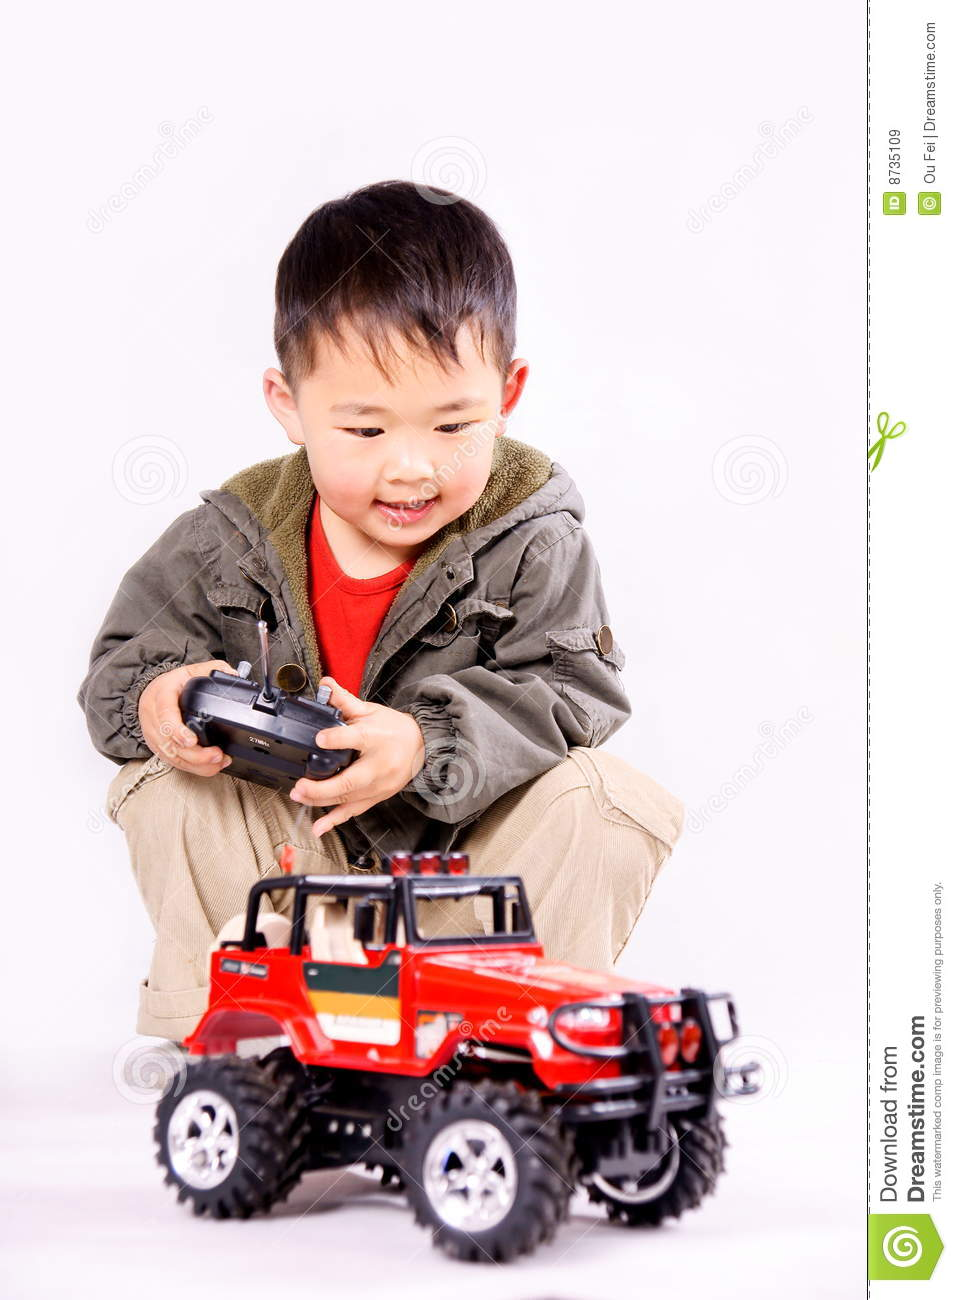 kids remote cars with Royalty Free Stock Images Boy Remote Control Car Image8735109 on 5948202 additionally Best Tech Gifts For Kids 2017 3629090 besides Voiture Pour Bebe also Crescent 148 Piece Professional Tool Set as well 000711597 default pd.